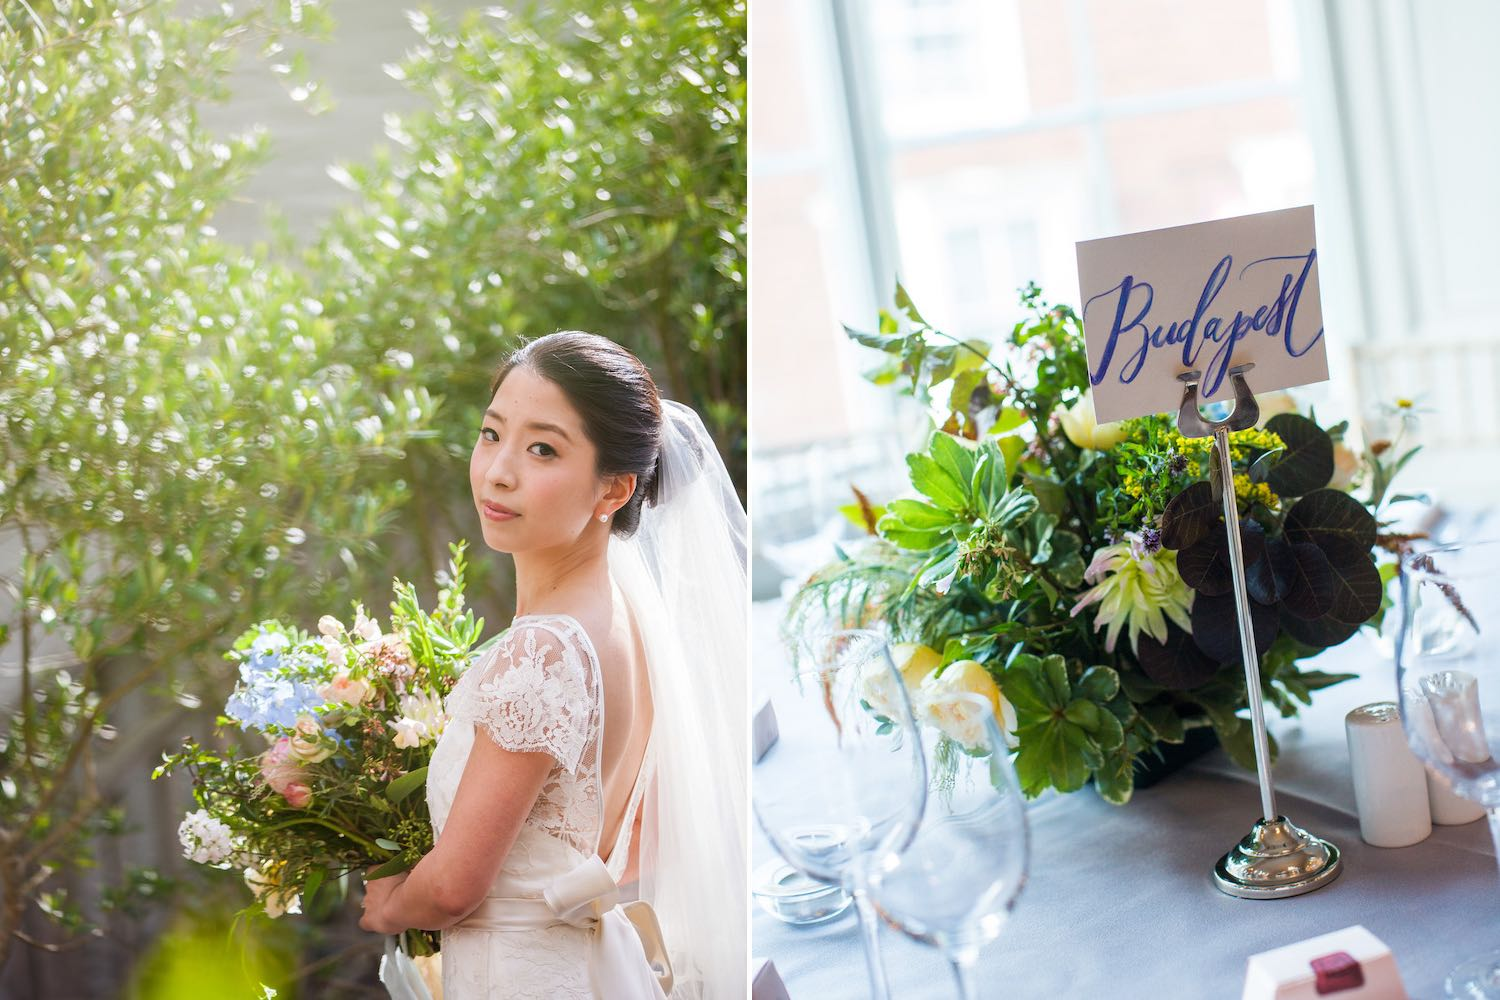 Bride with bouquet and rustic table flowers